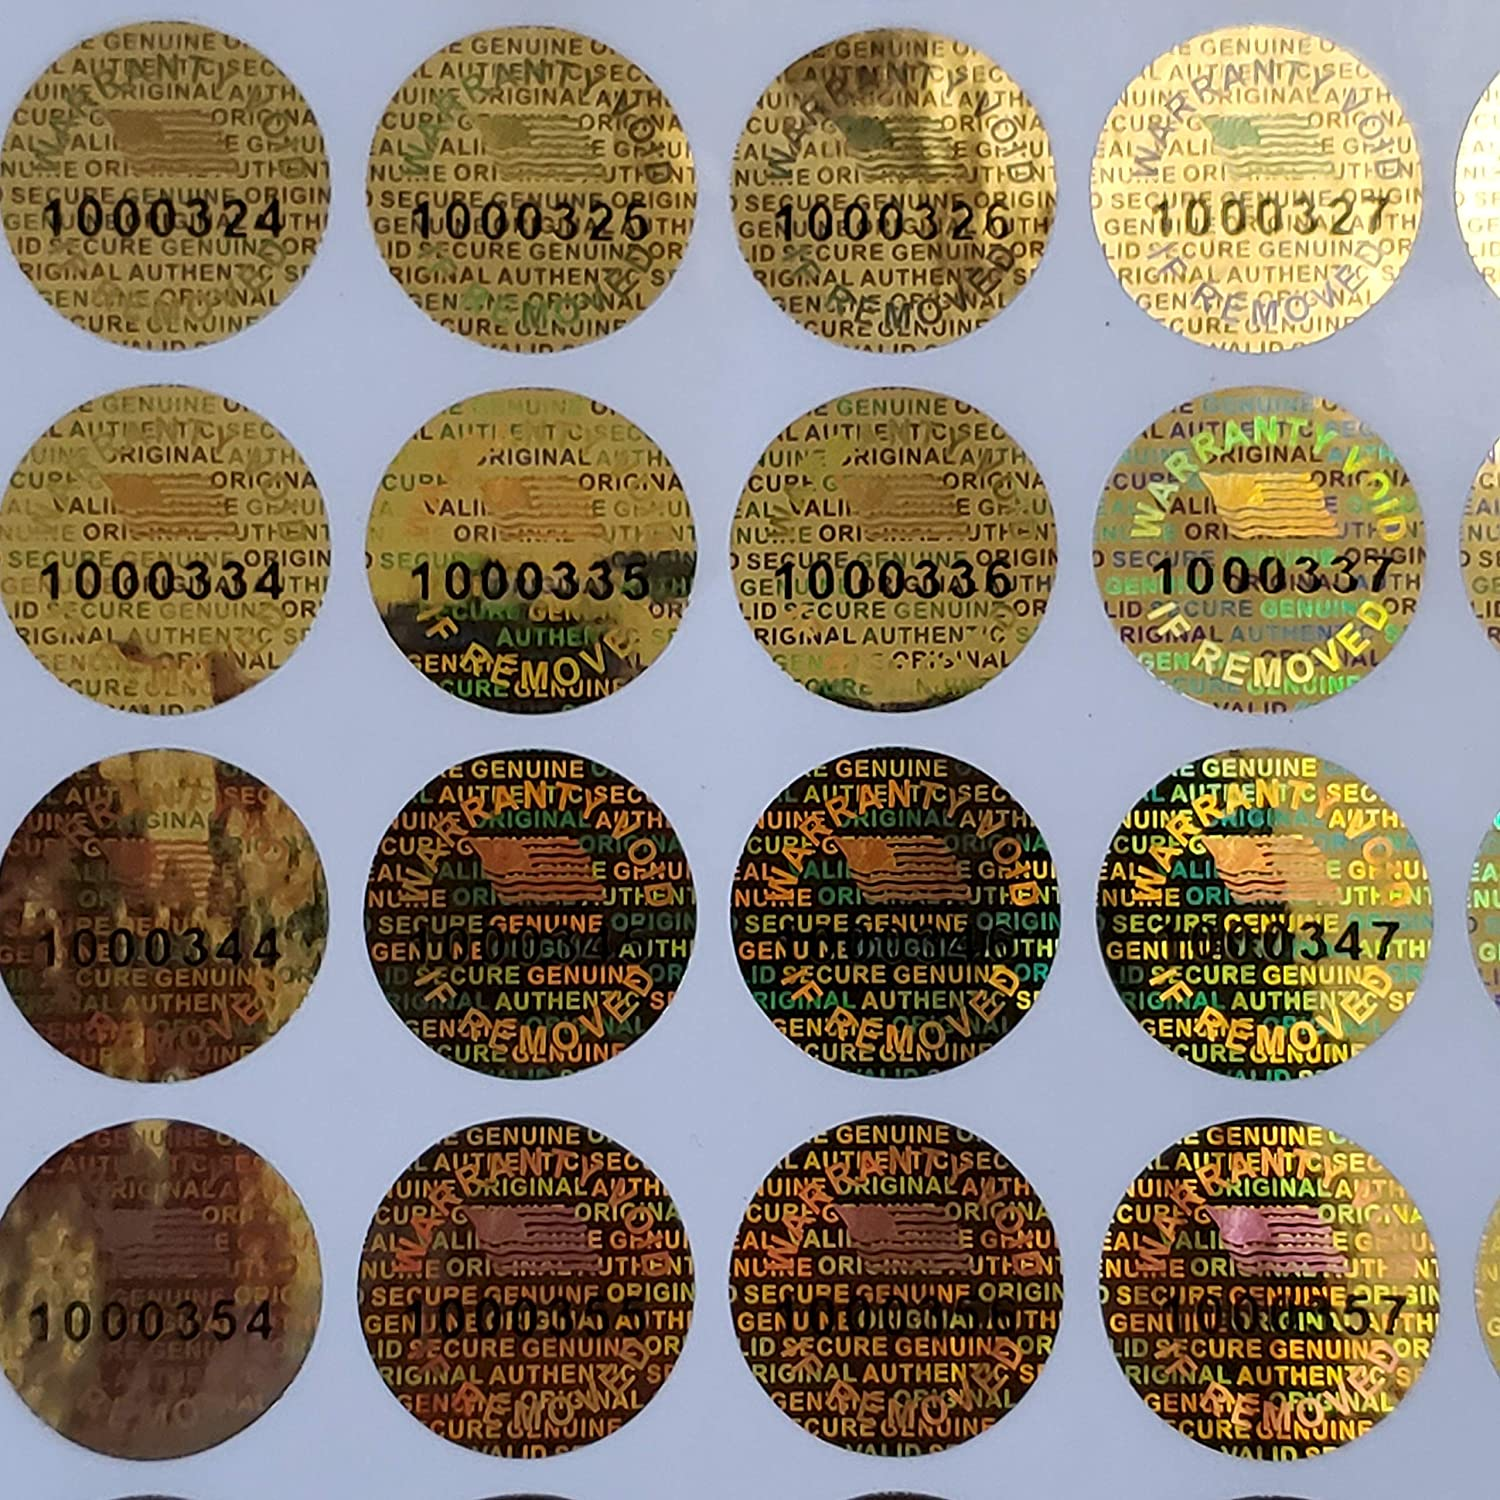 Golden Color 14 MM 100 Round with Serial Number Hologram Labels Tamper Evident Stickers Security Void Seals Labels 0.53 inch Dealimax Brand